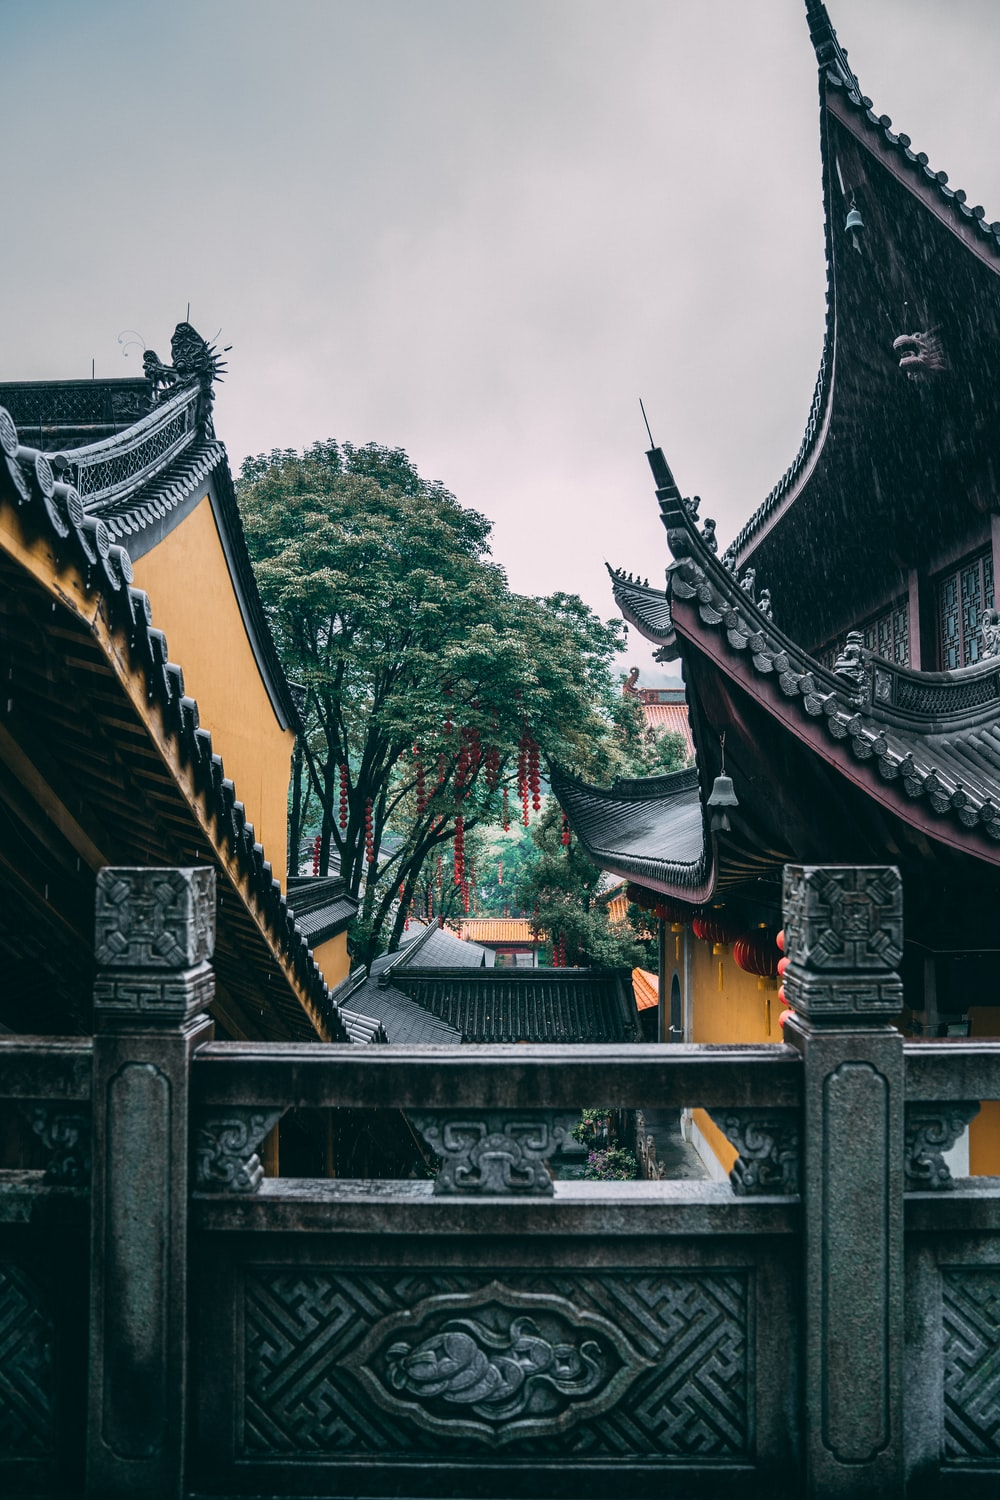 brown and black temple near green trees during daytime